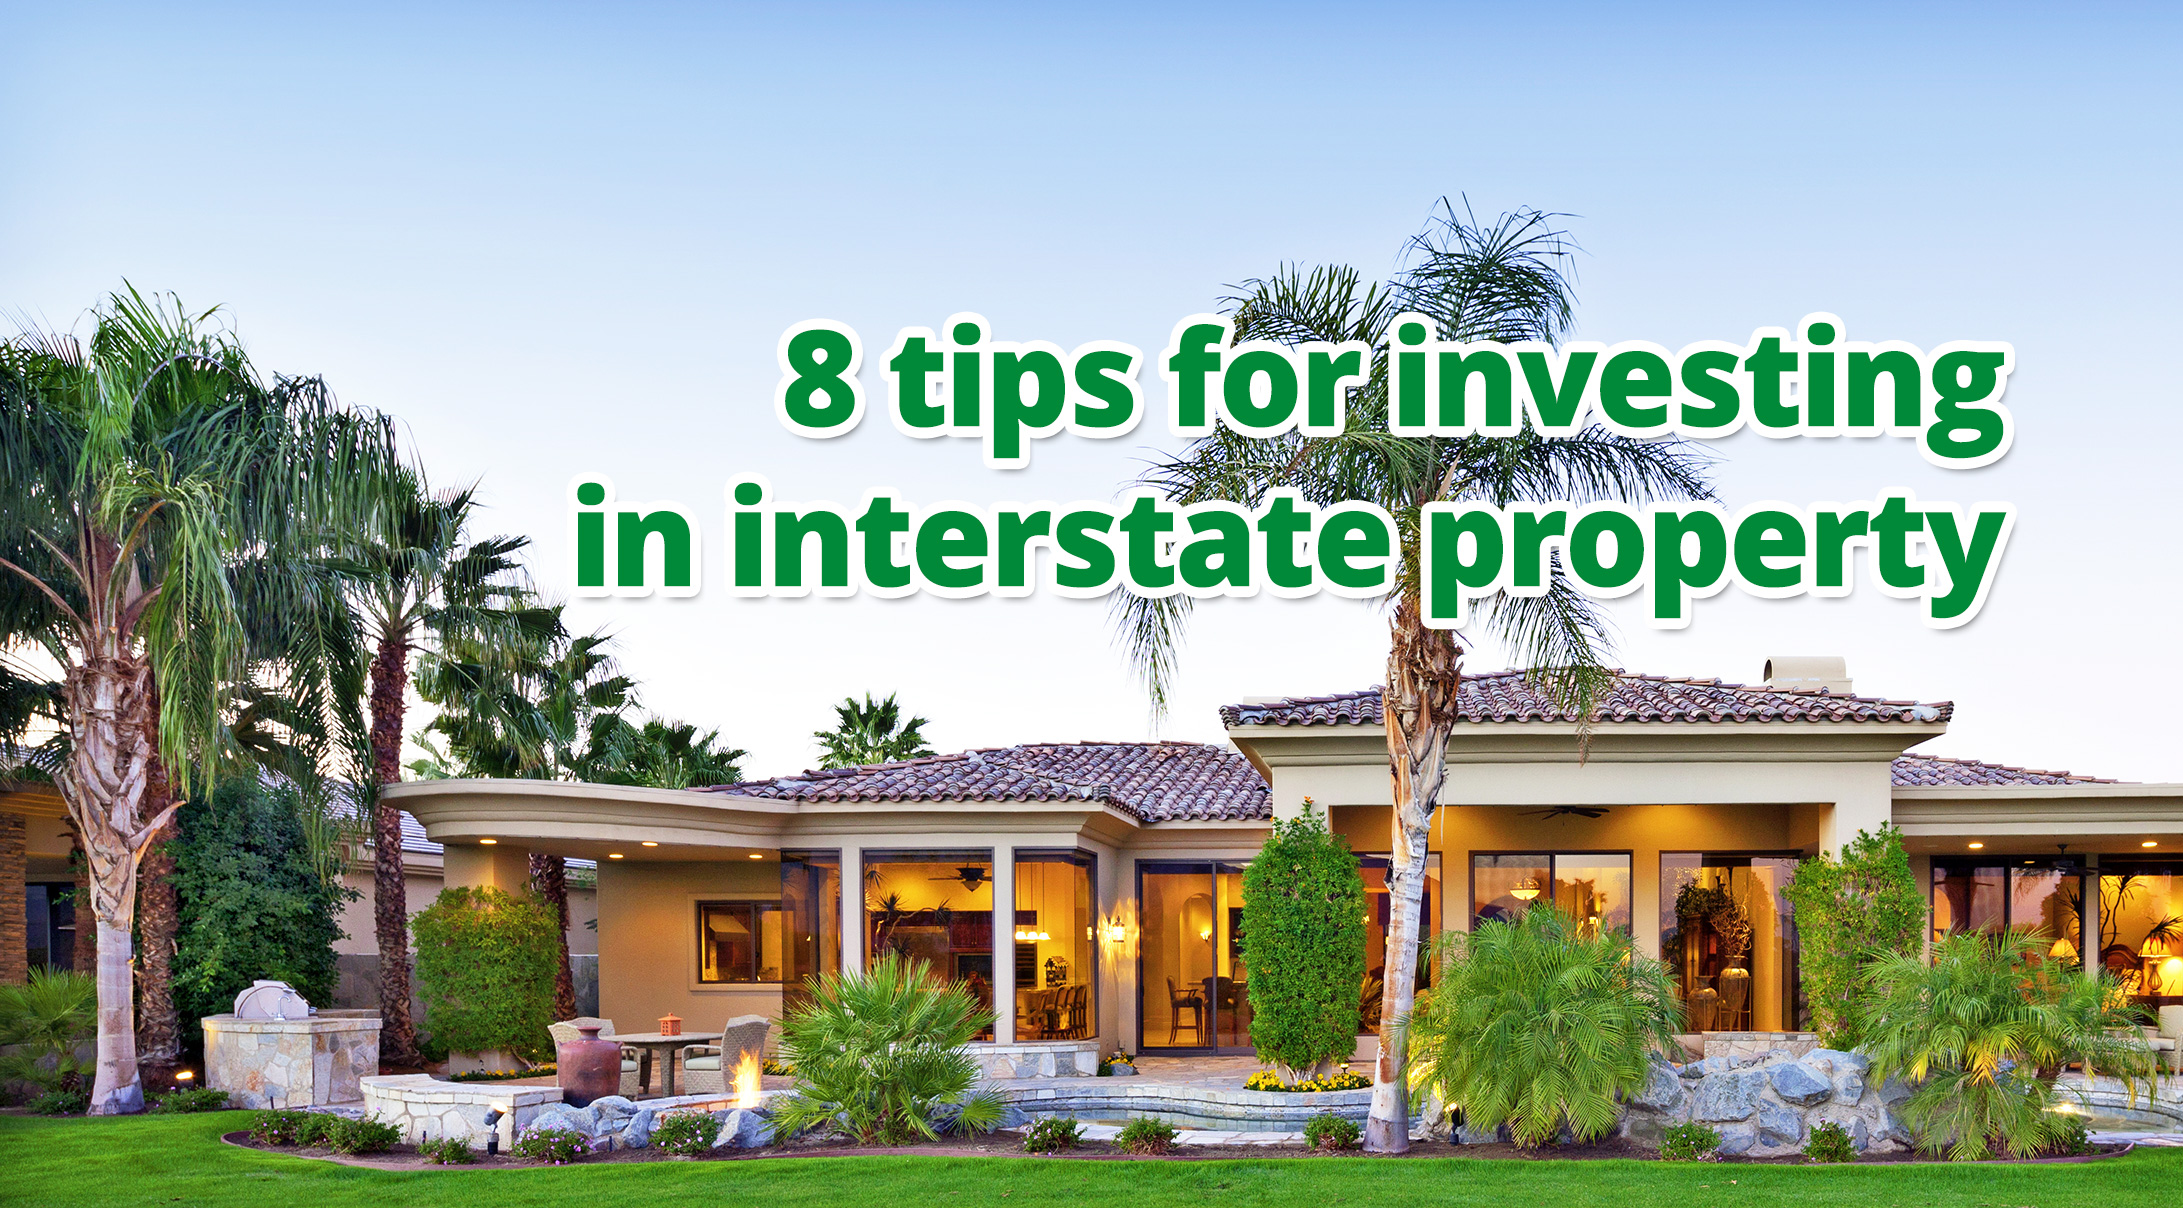 8 tips for investing in interstate property